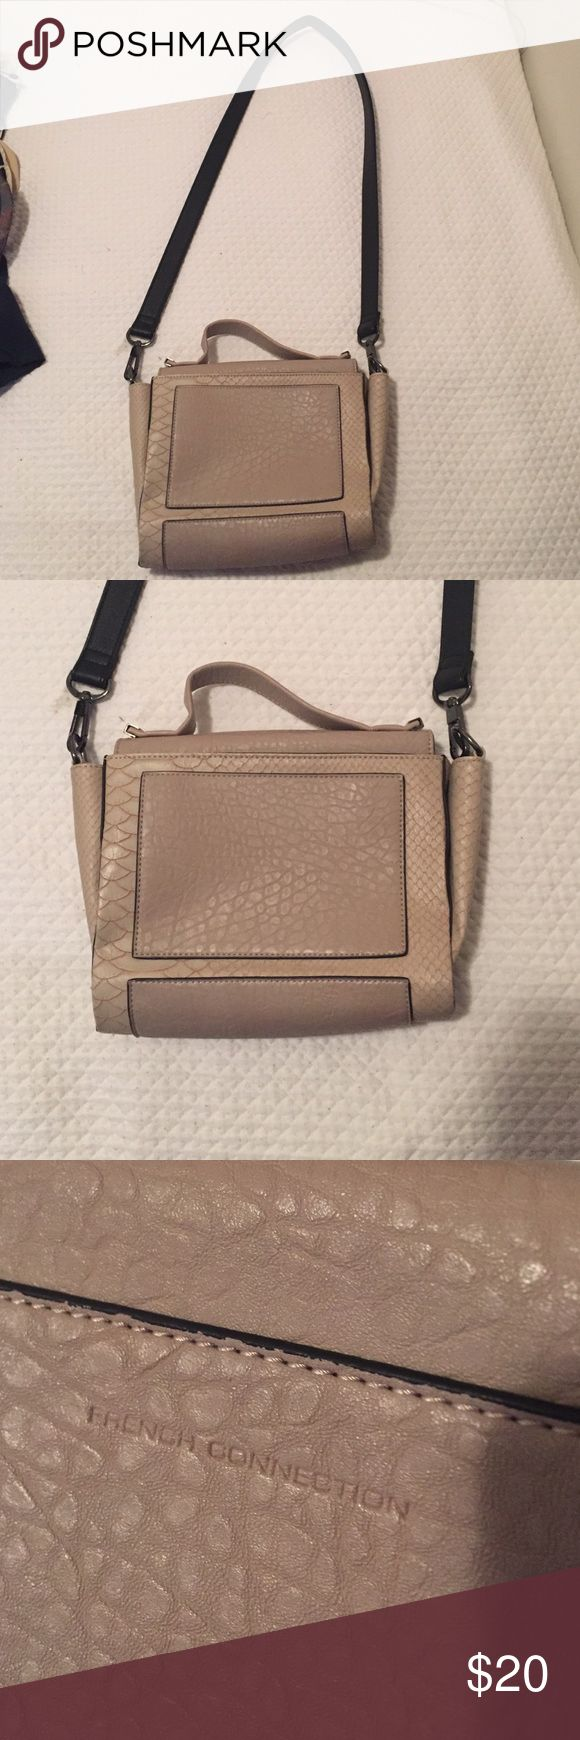 French Connection Purse Tan leather purse with snake skin detail and black strap - magnetic closure French Connection Bags Crossbody Bags